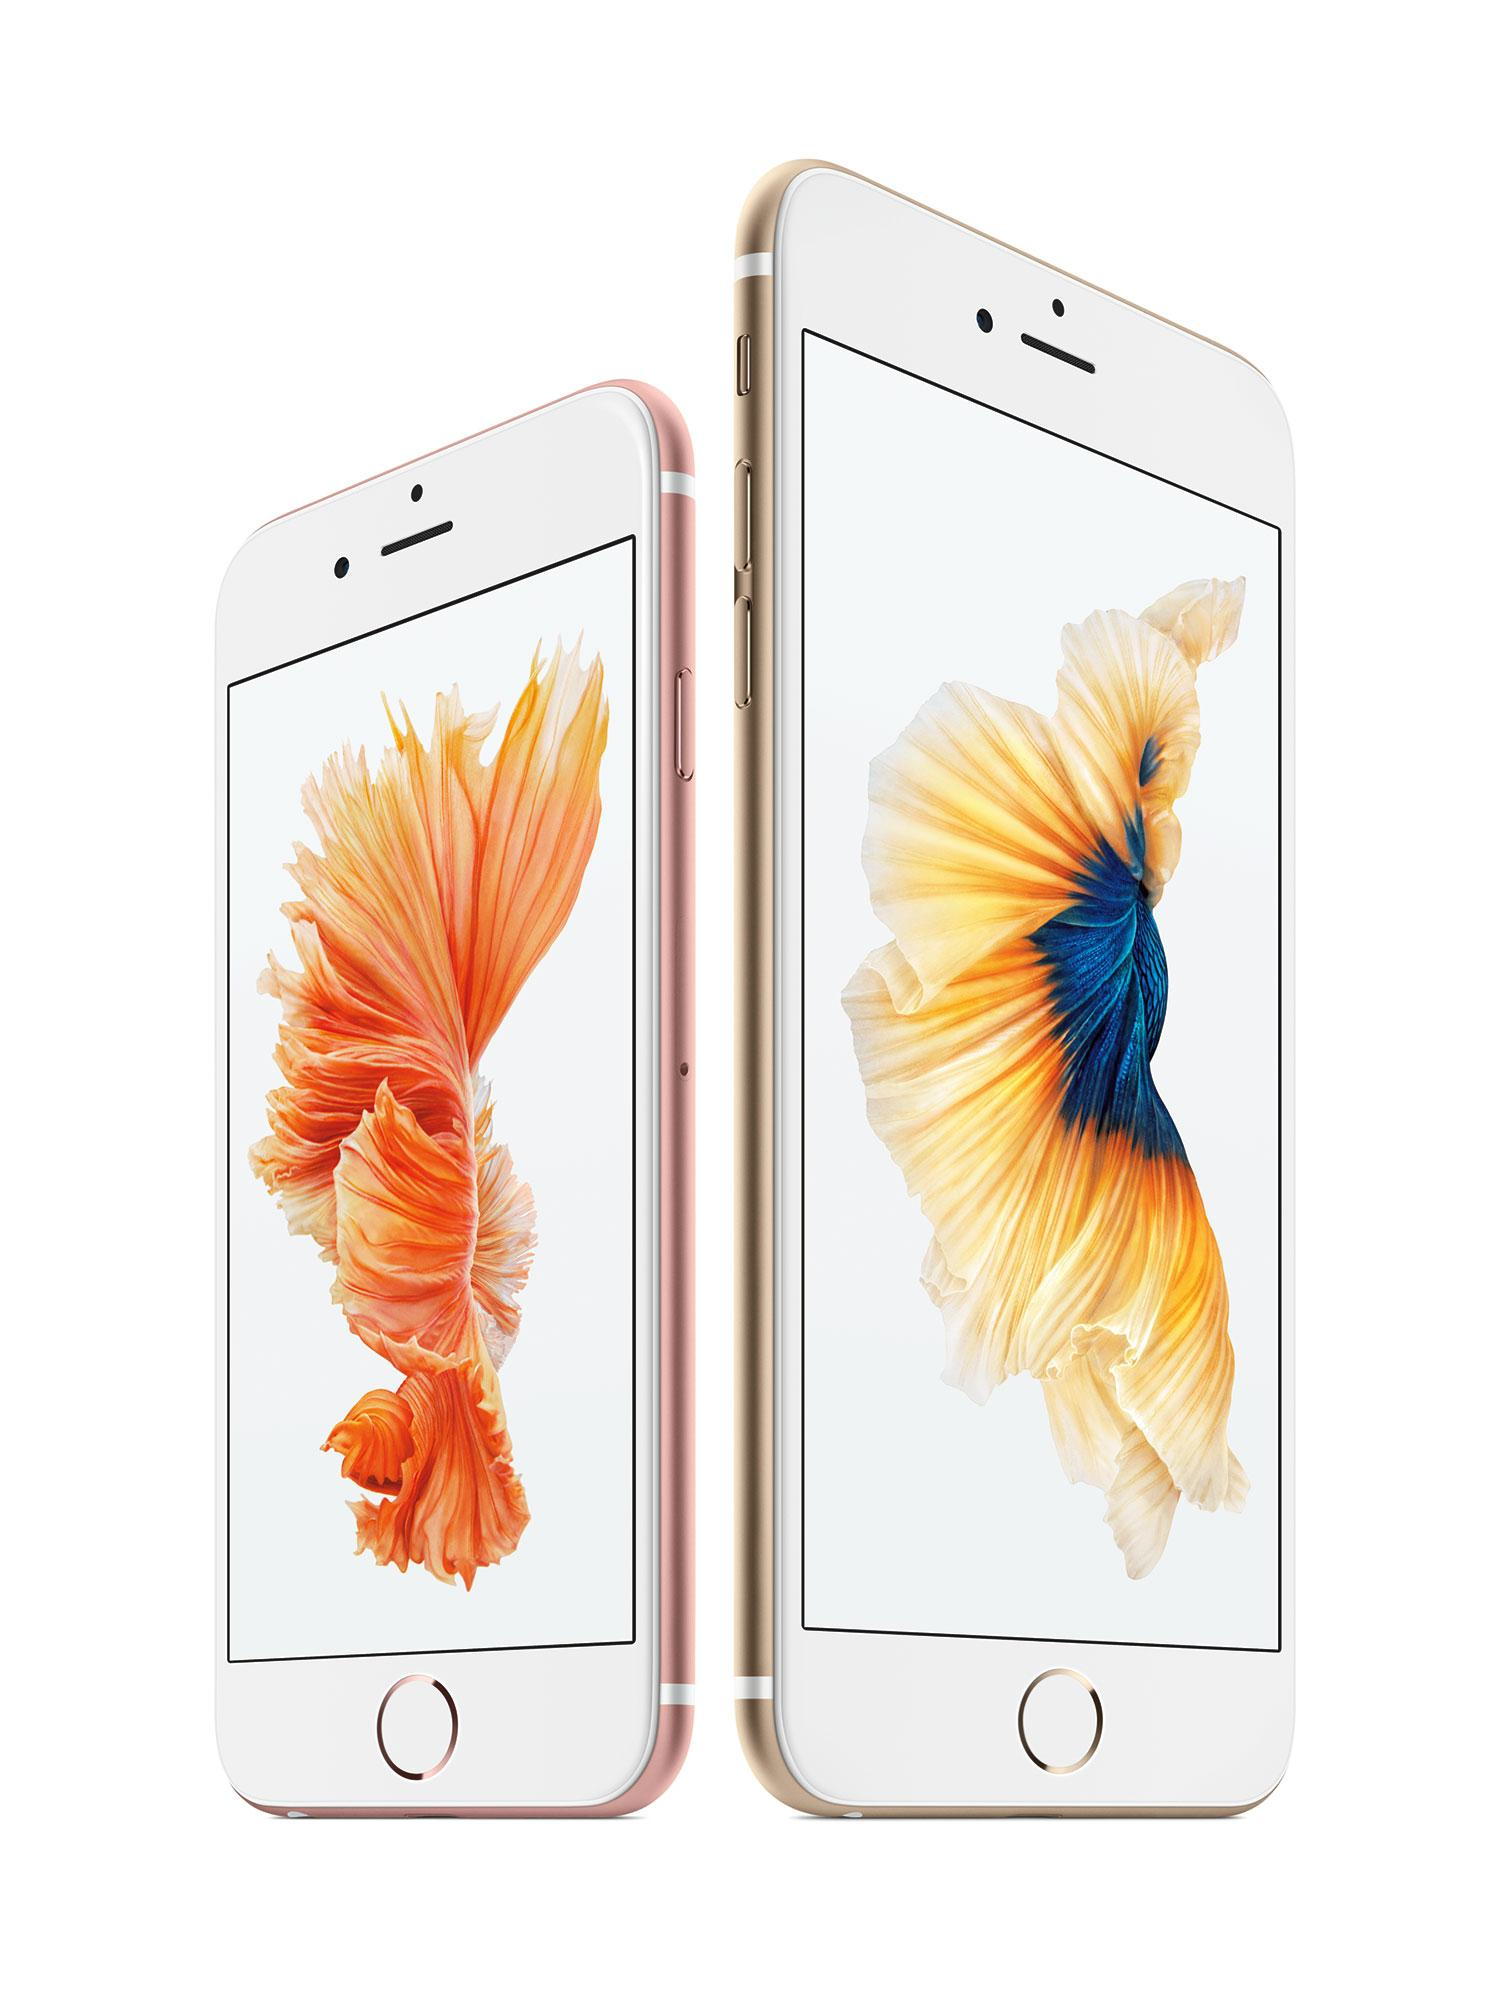 iPhone 6s y 6s Plus en color rosa y oro